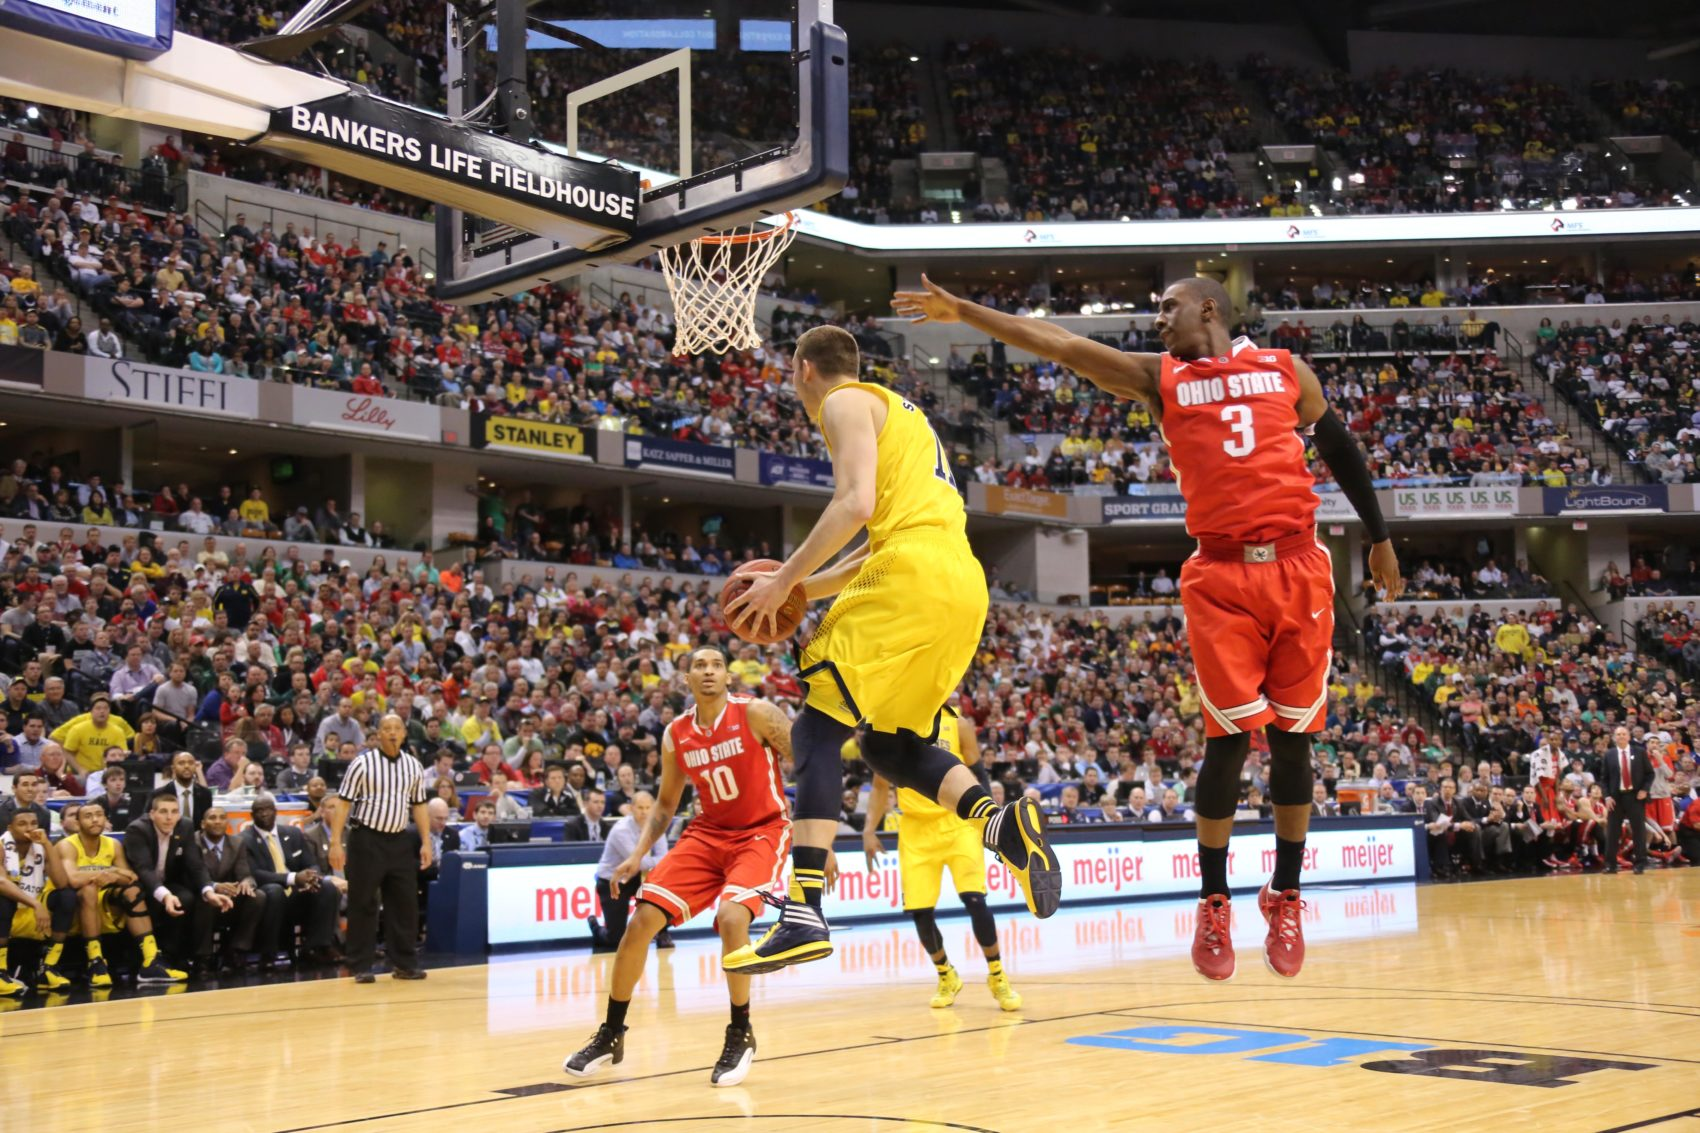 Michigan 72, Ohio State 69-24